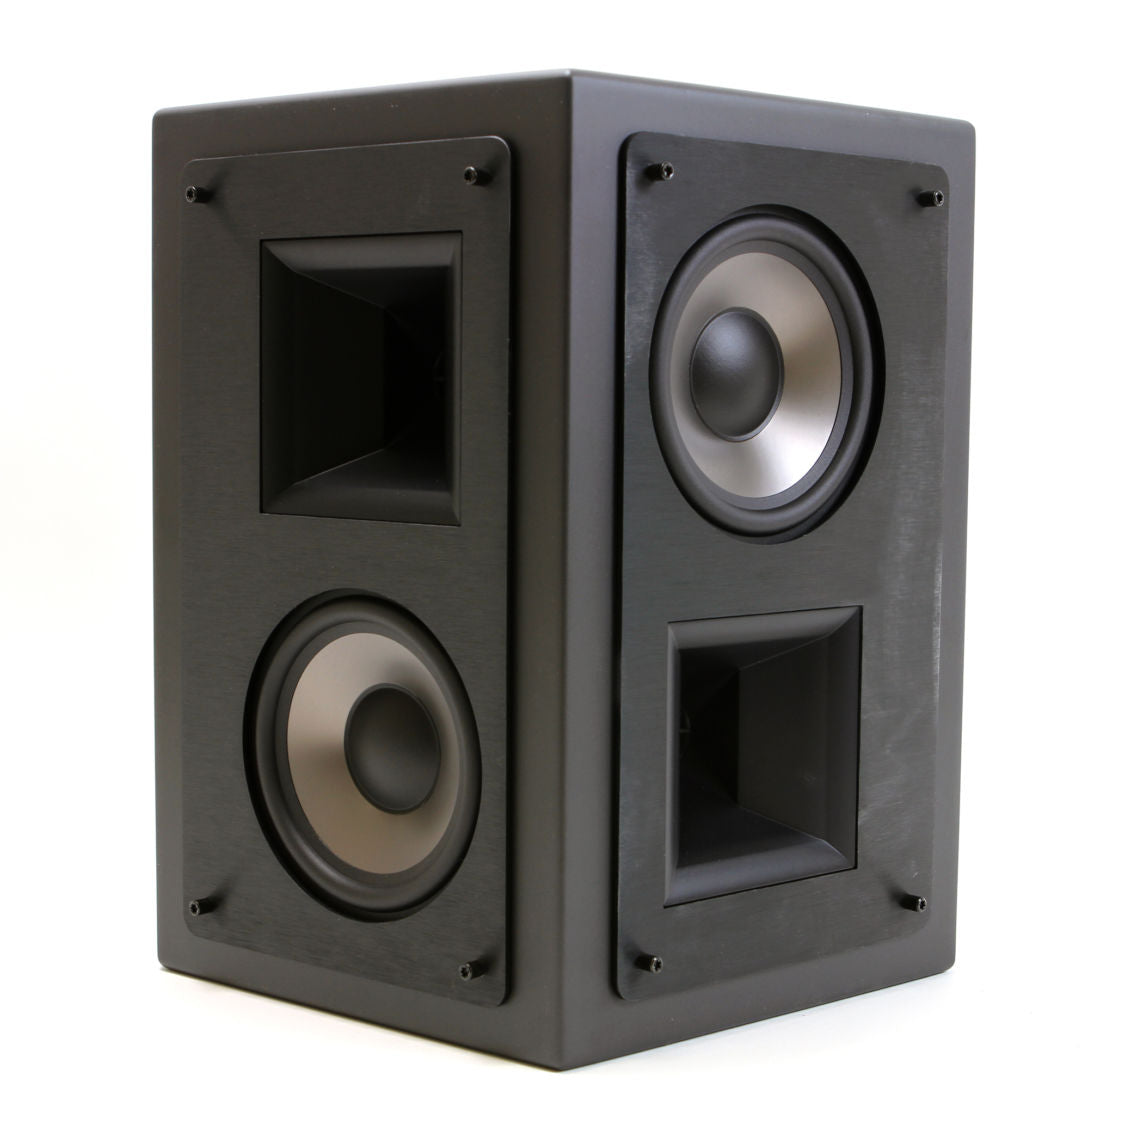 KLIPSCH- KS-525-THX SURROUND SPEAKERS (PR) - Vinyl Sound